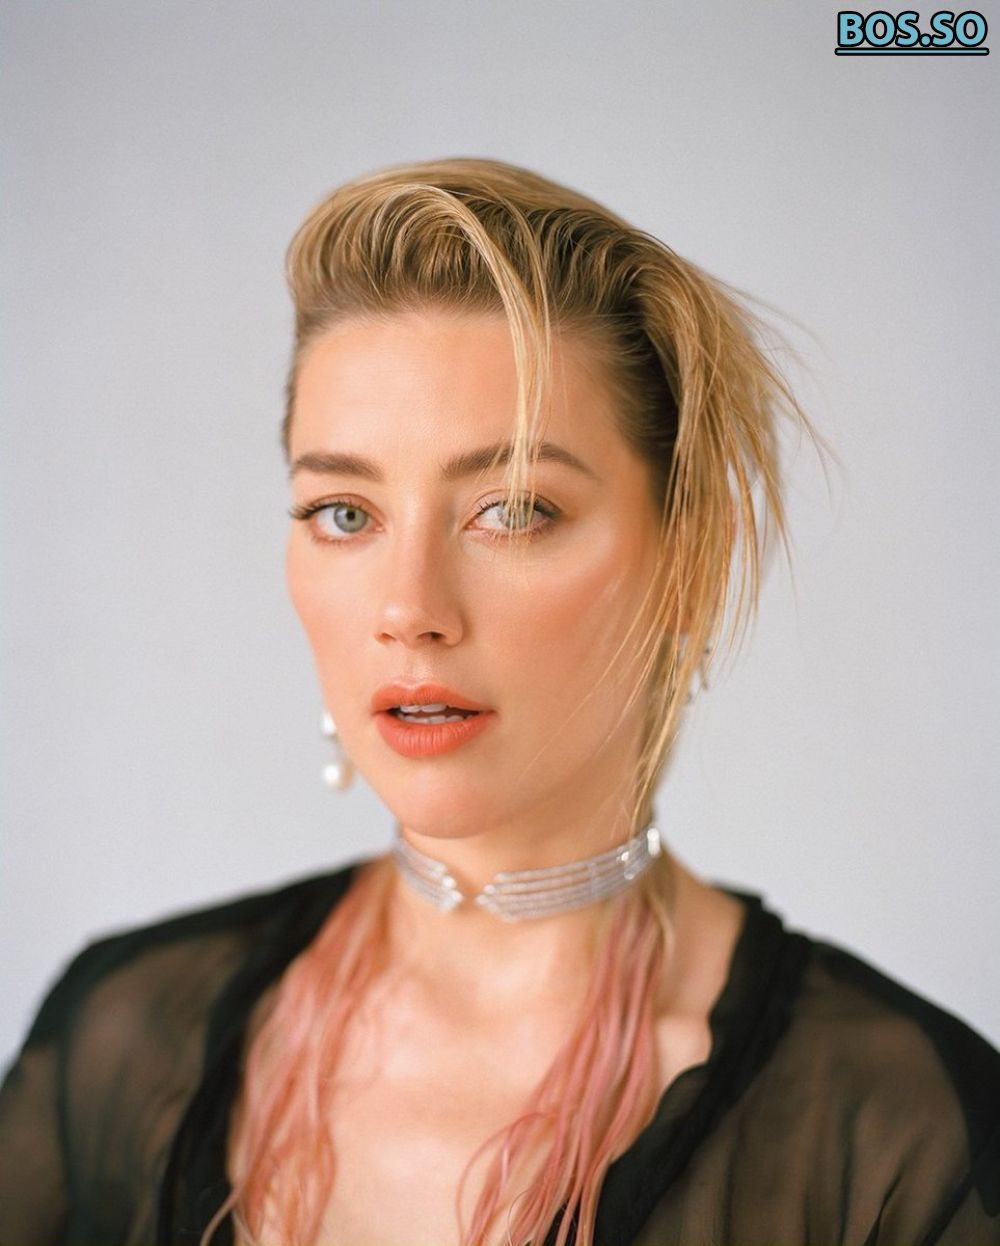 https://cdn.fappeninggram.com/photos/amber-heard/amber-heard-nude715.jpg